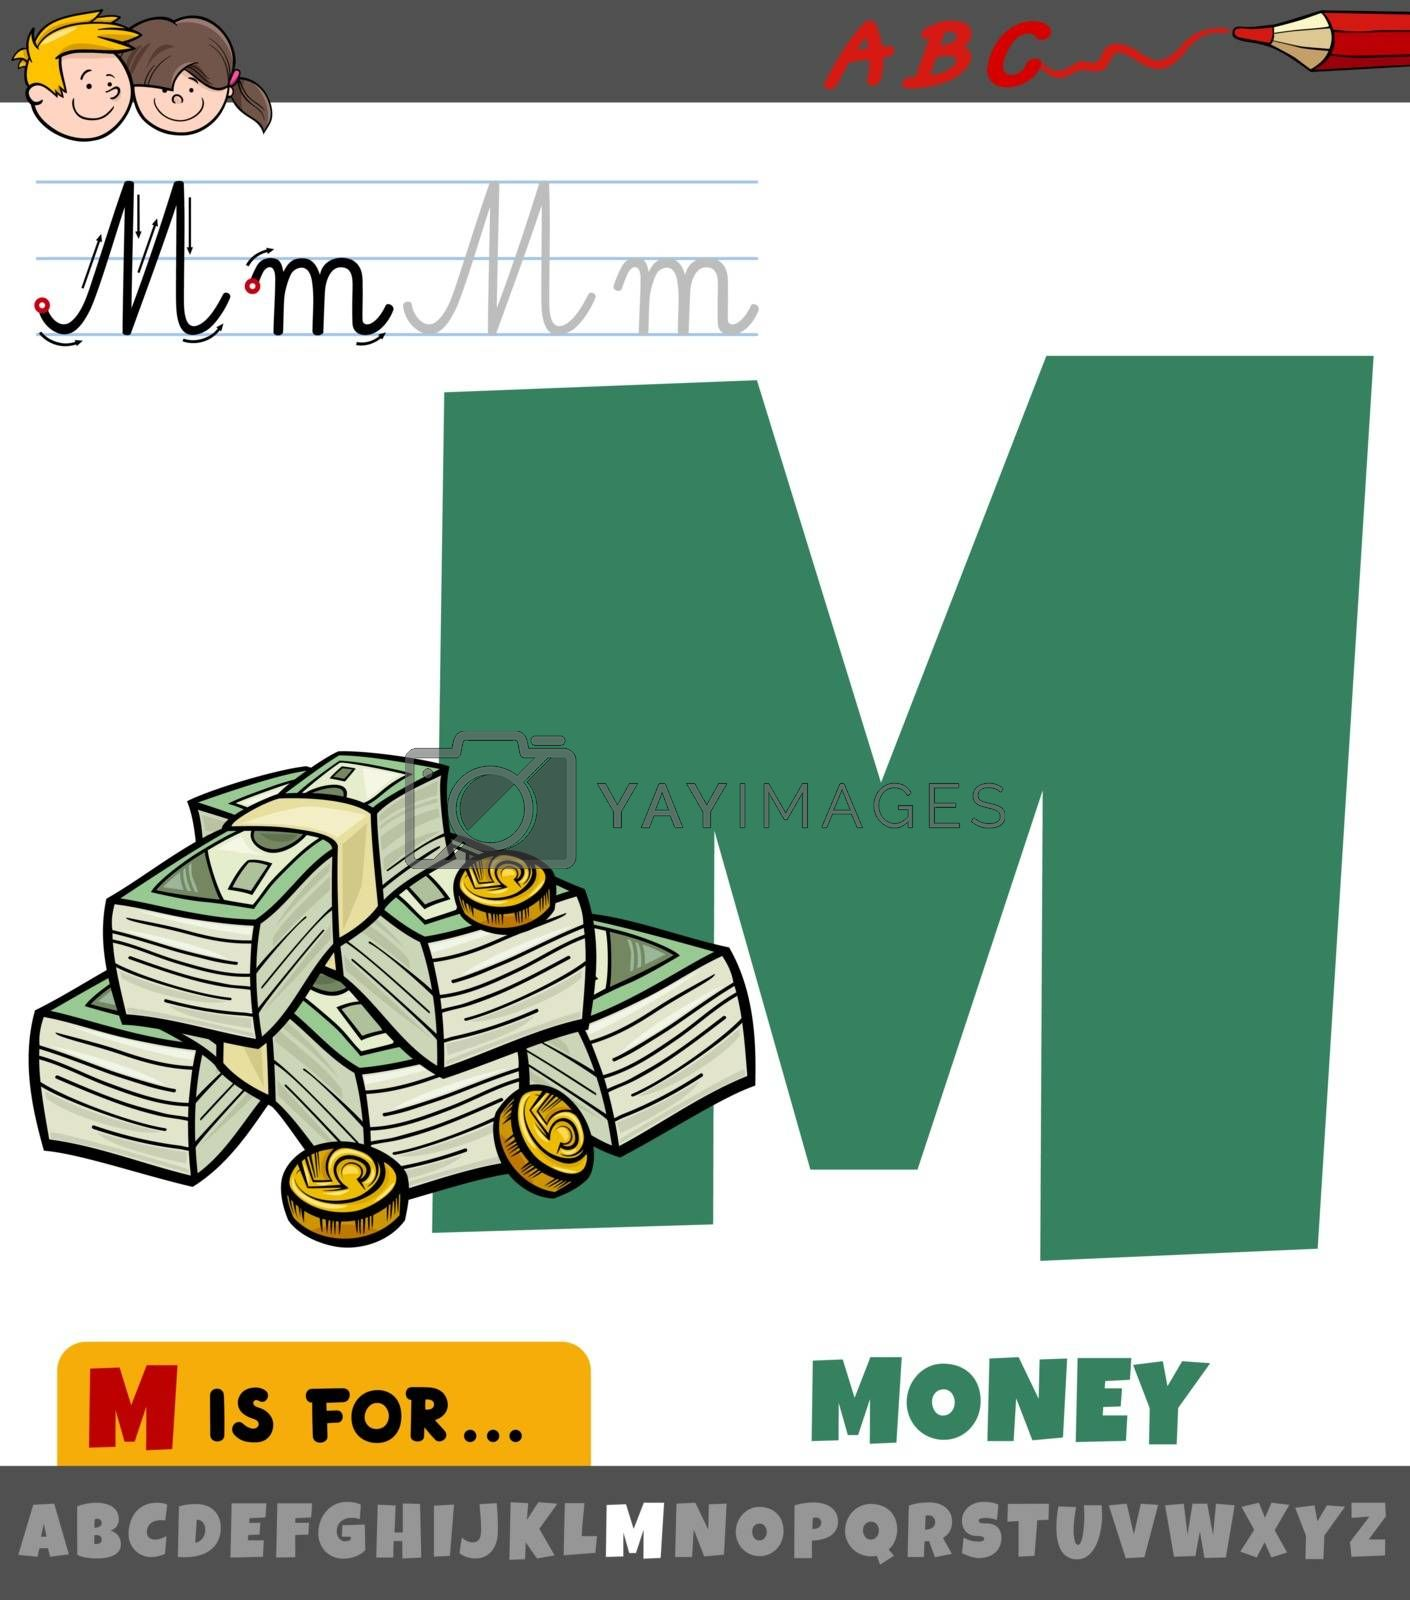 Educational cartoon illustration of letter M from alphabet with money for children